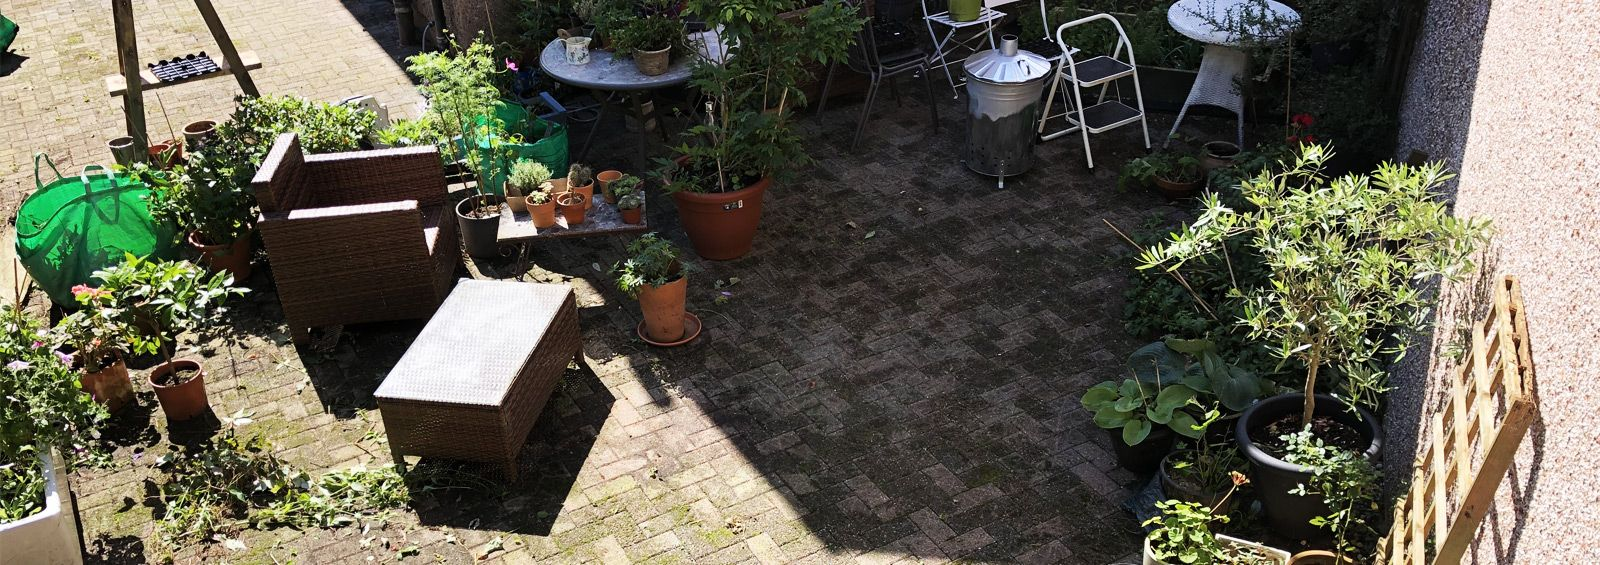 patio pressure washing services gyffin conwy